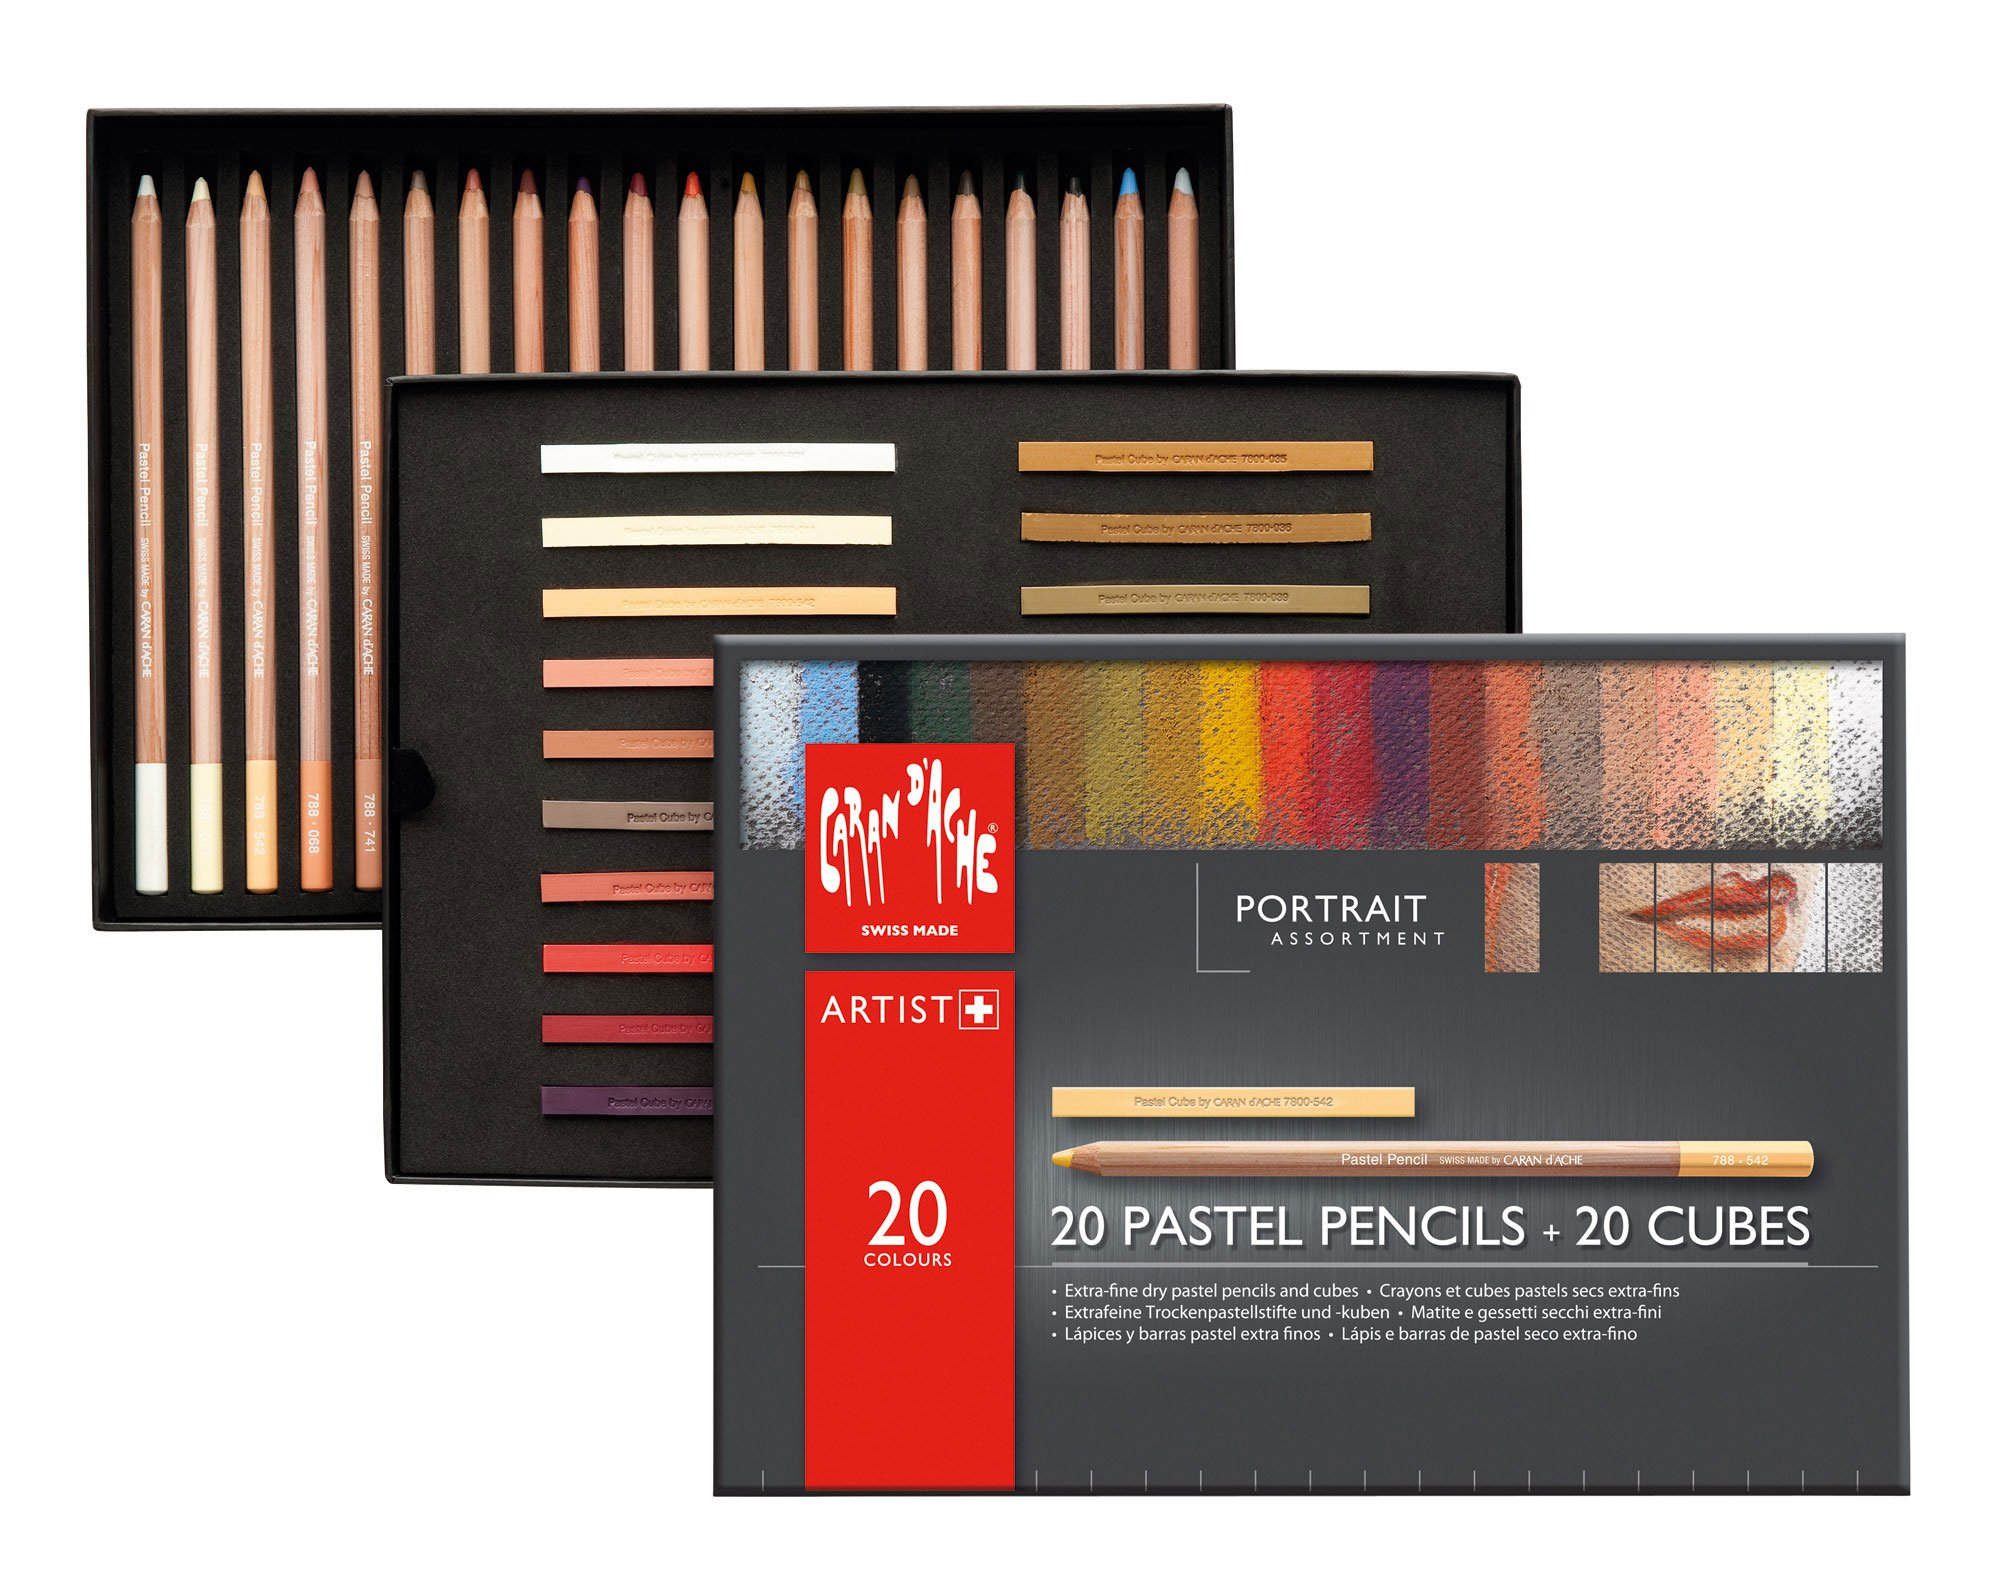 Caran D'ache 7880.520 Pastel Portrait Assortment 20 Pencils and 20 Cubes